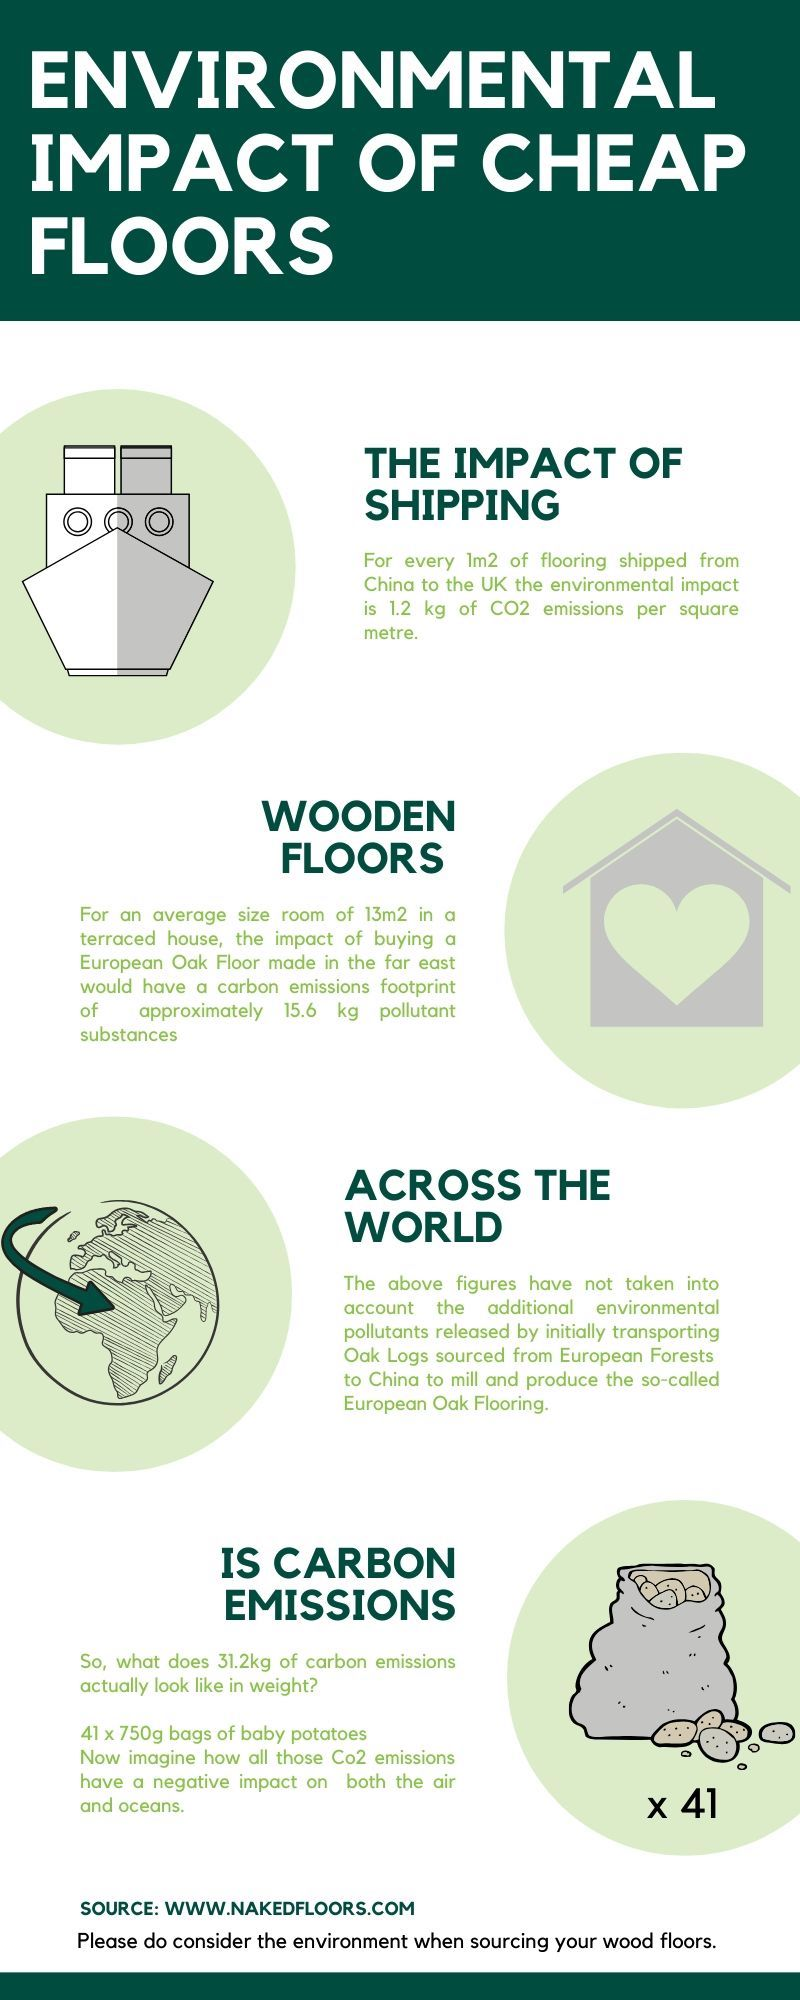 infographic about the environmental impact of cheap wooden floors